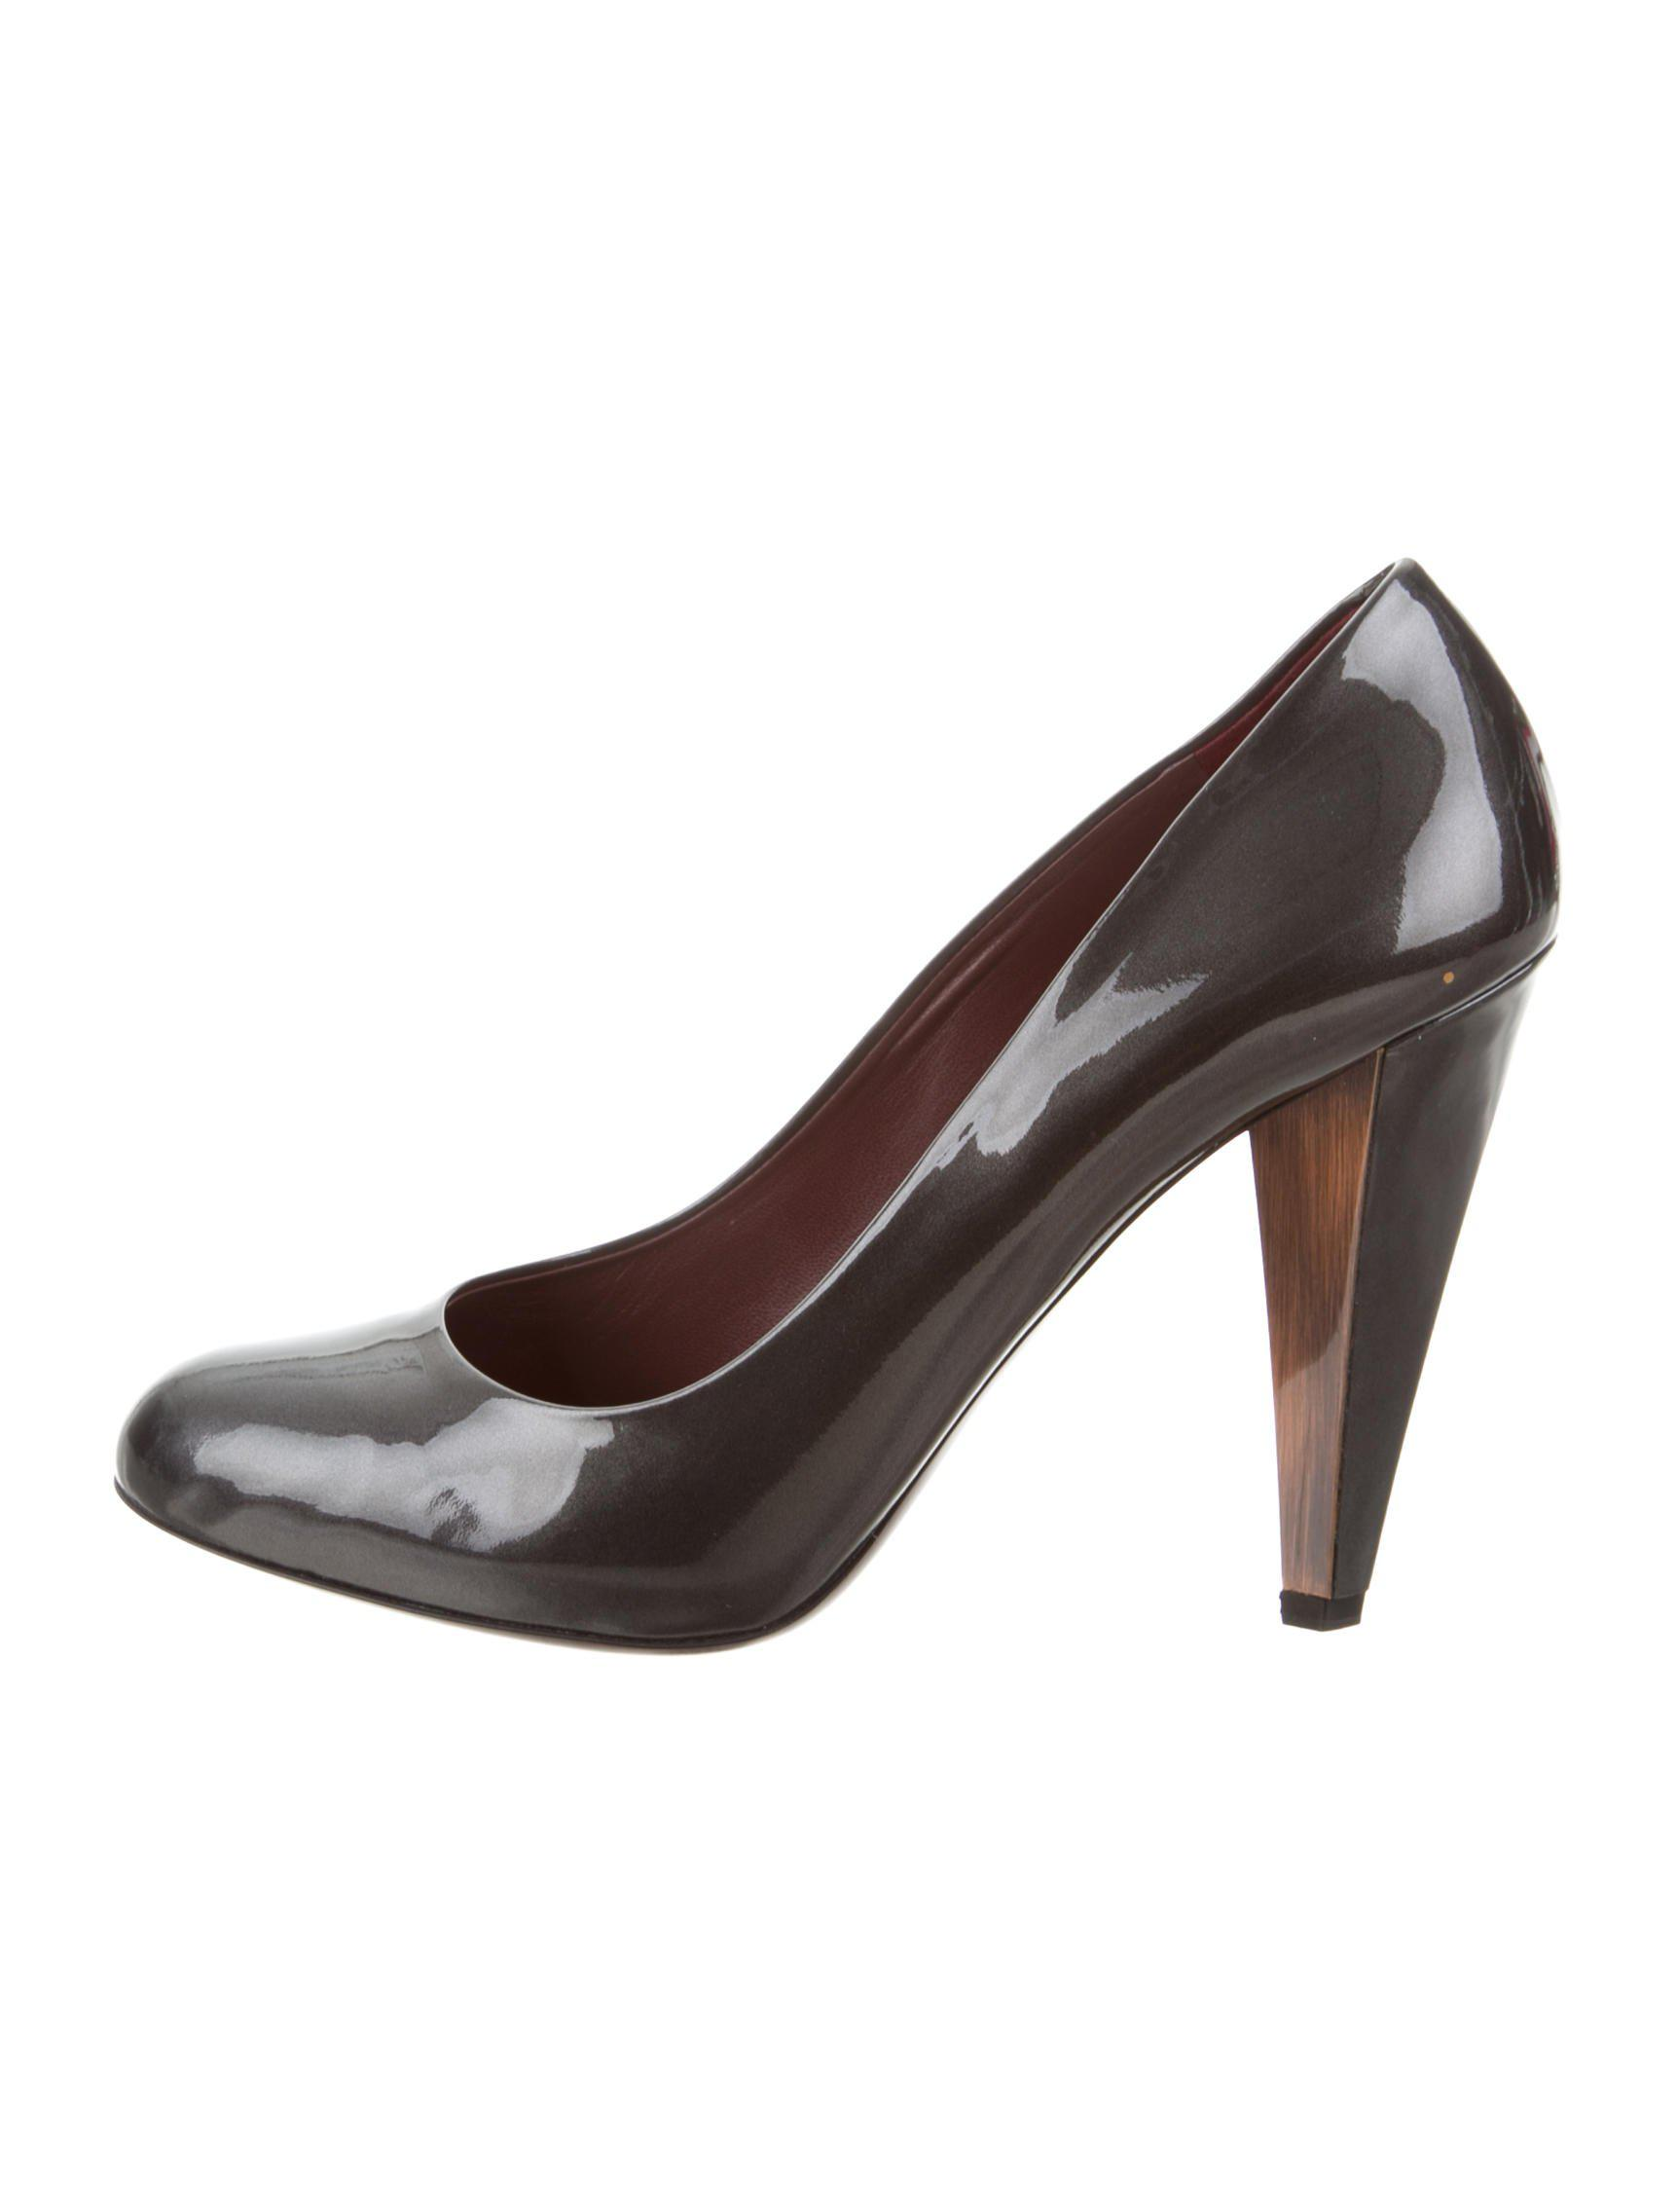 Miu Miu Patent Leather Pointed-Toe Pumps w/ Tags for cheap price cheap sale clearance KI1PMpT